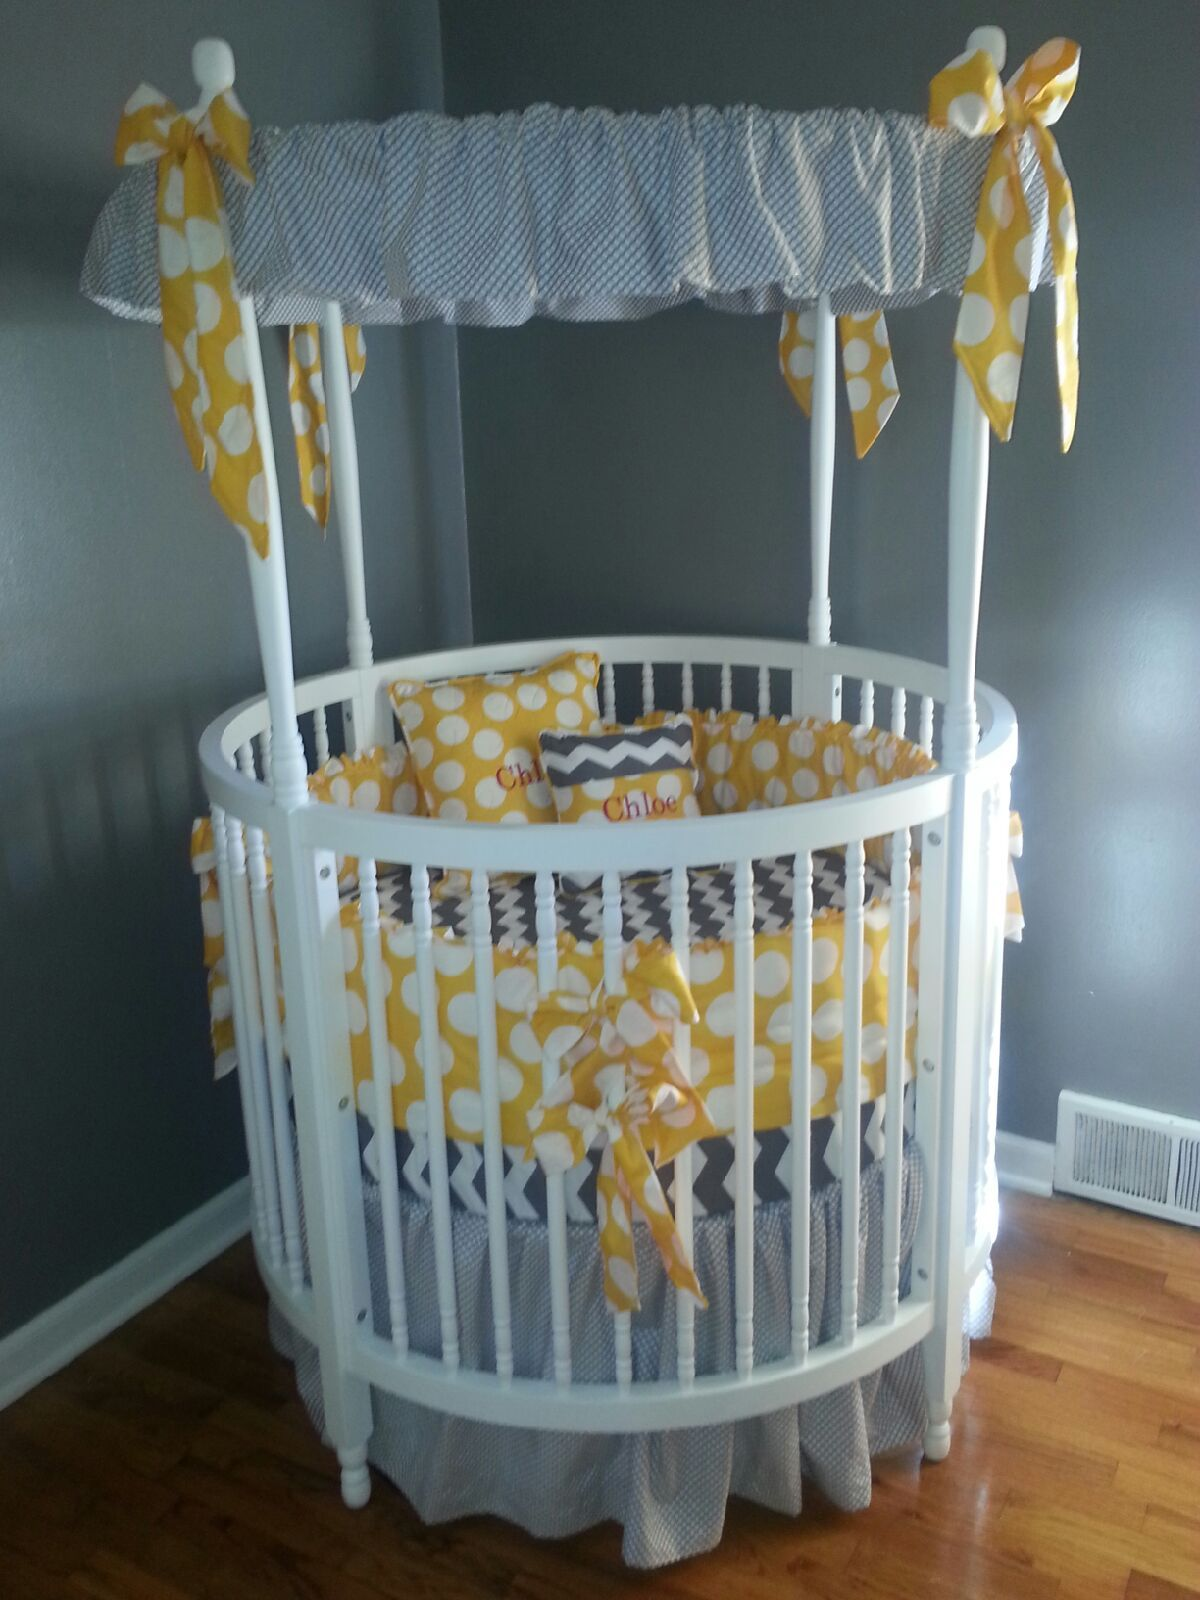 Crib pillows babies - Modern White Round Baby Crib With Amazing Gray Themed Canopy Accessories Also White Circle Pattern Yellow